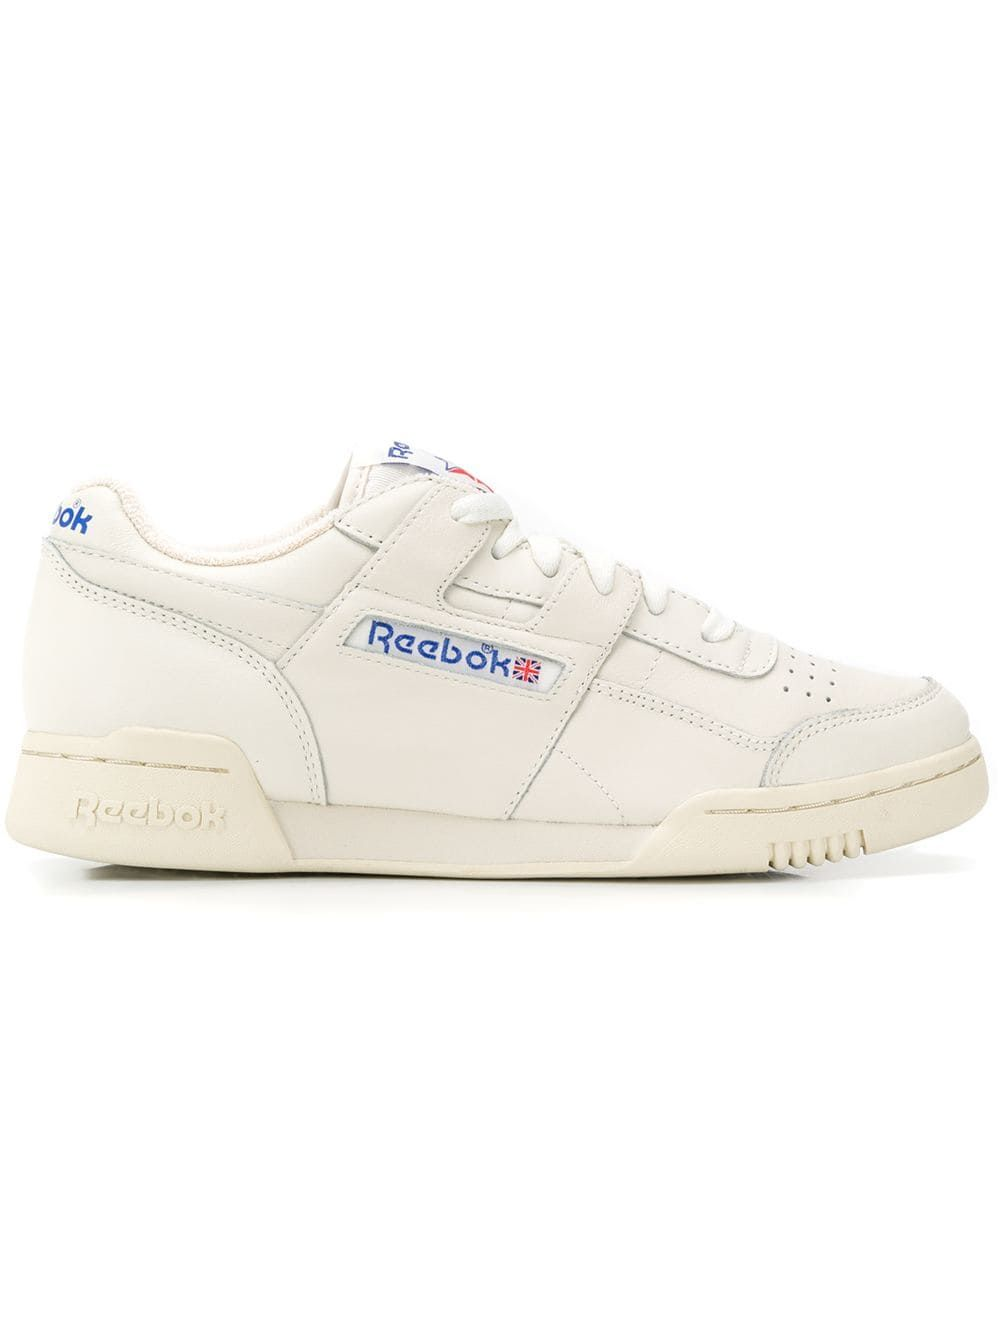 899fdd646f2 REEBOK REEBOK LACE-UP SNEAKERS - NEUTRALS.  reebok  shoes